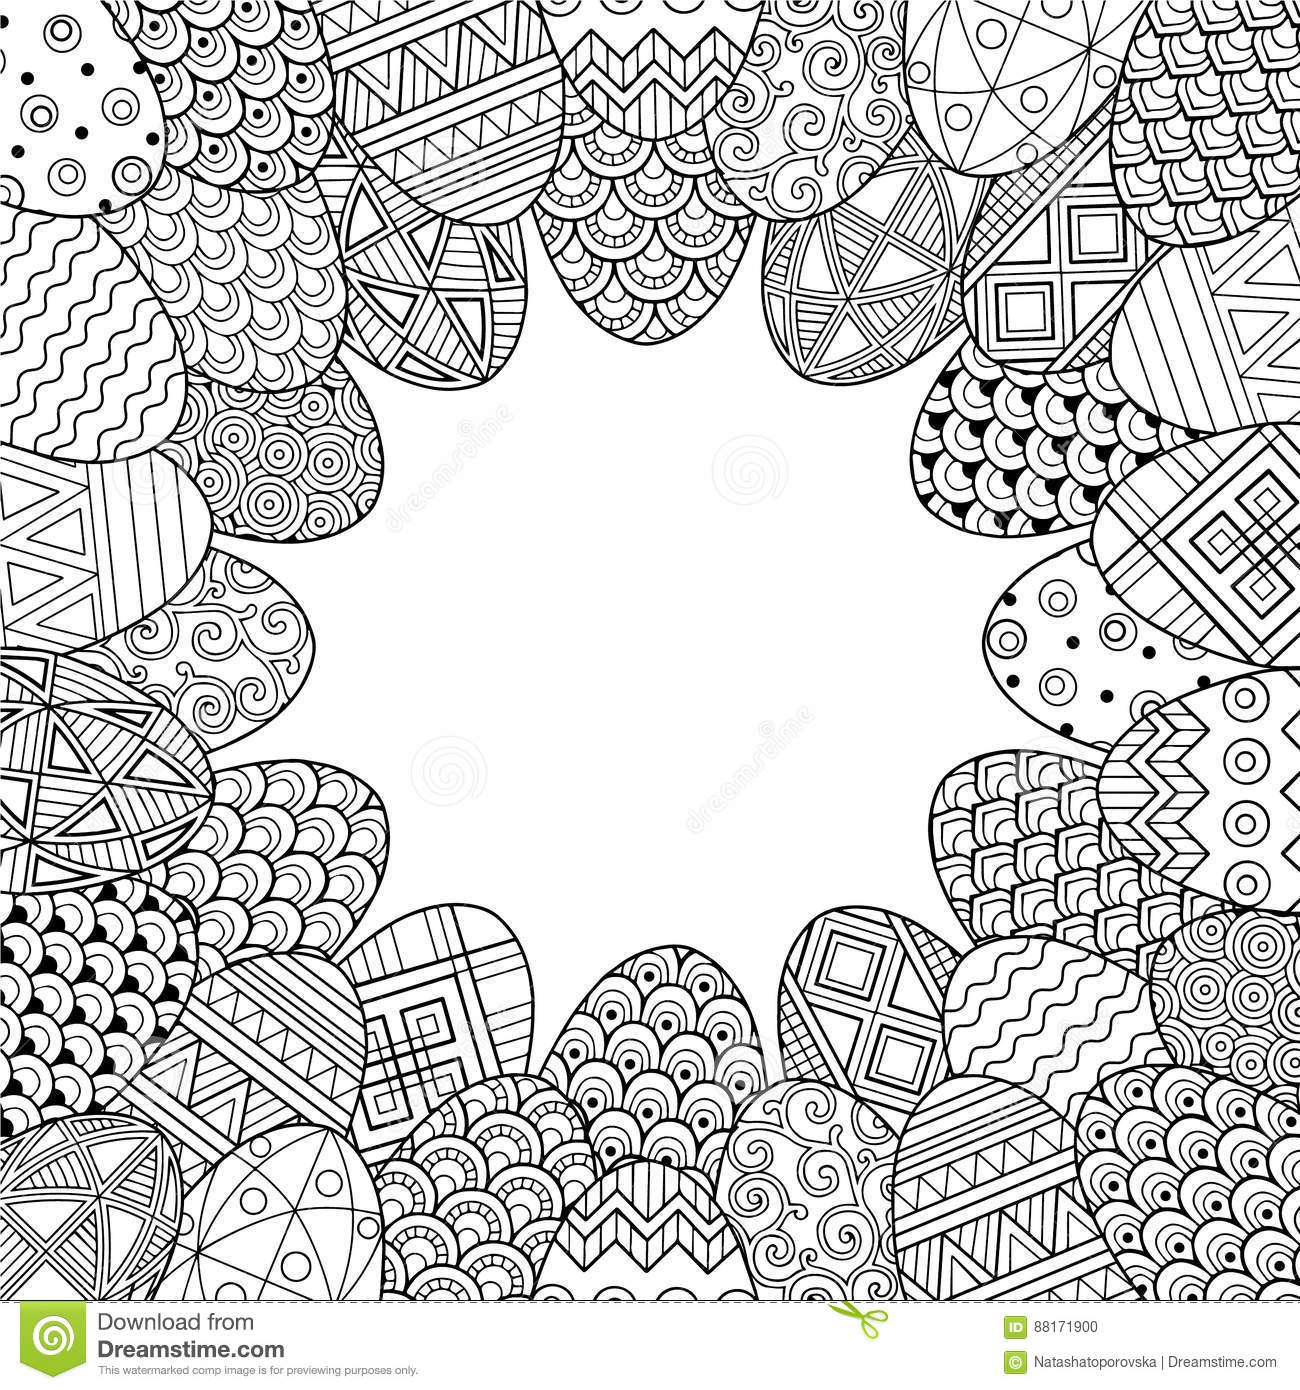 Happy easter. Round Vignette of Black and White Doodle Easter Eggs. Coloring book for adults for relax and meditation. Vector isol